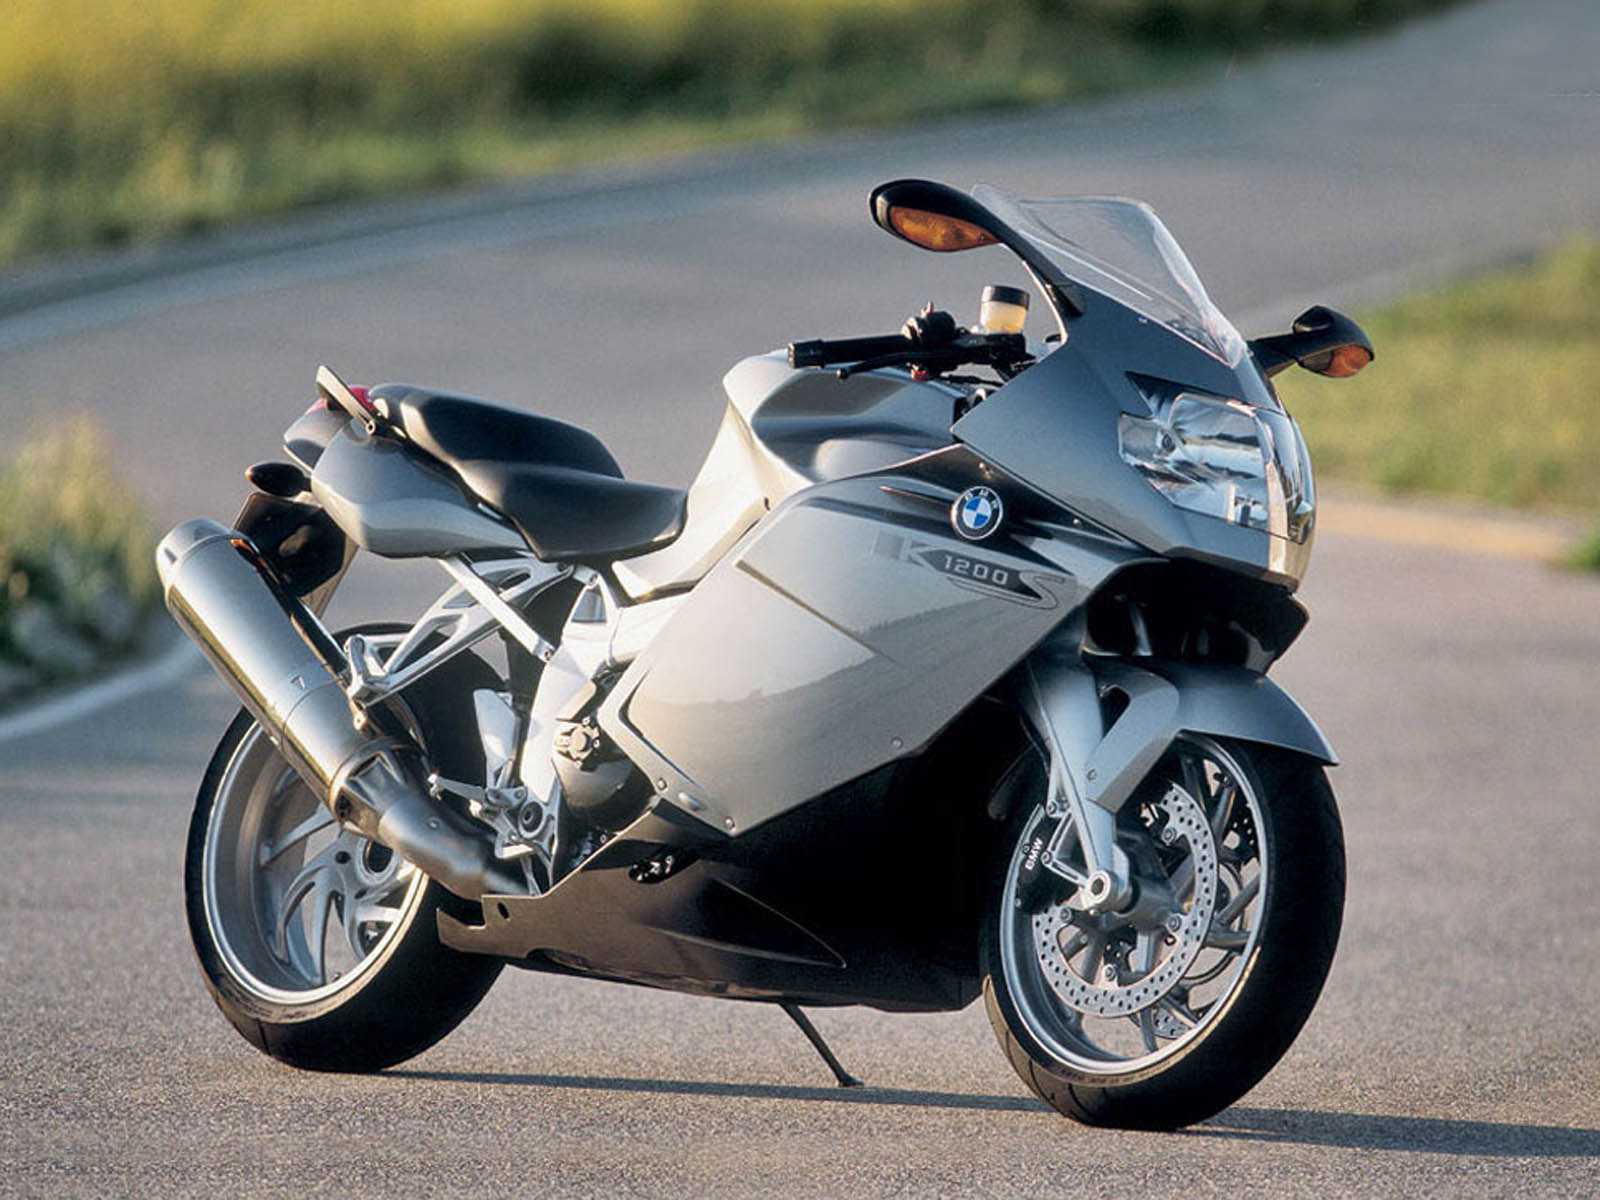 bmw k1200s wallpapers 01